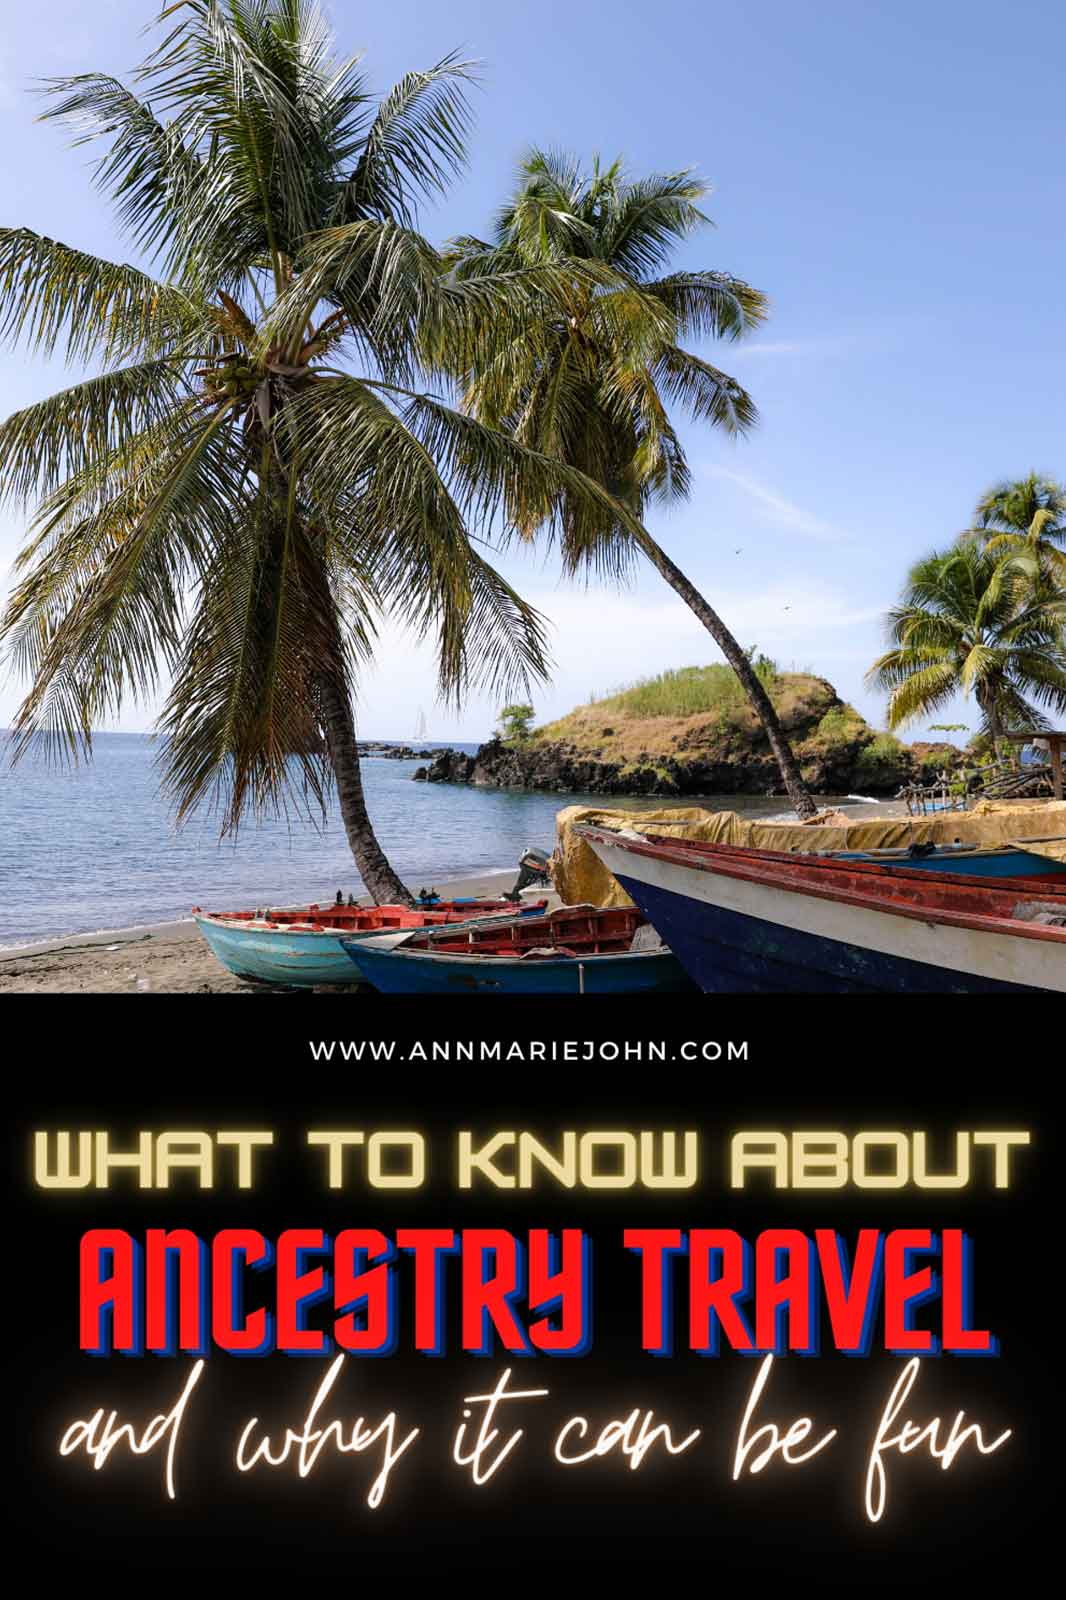 What You Should Know About Ancestry Travel And Why It Can Be Fun